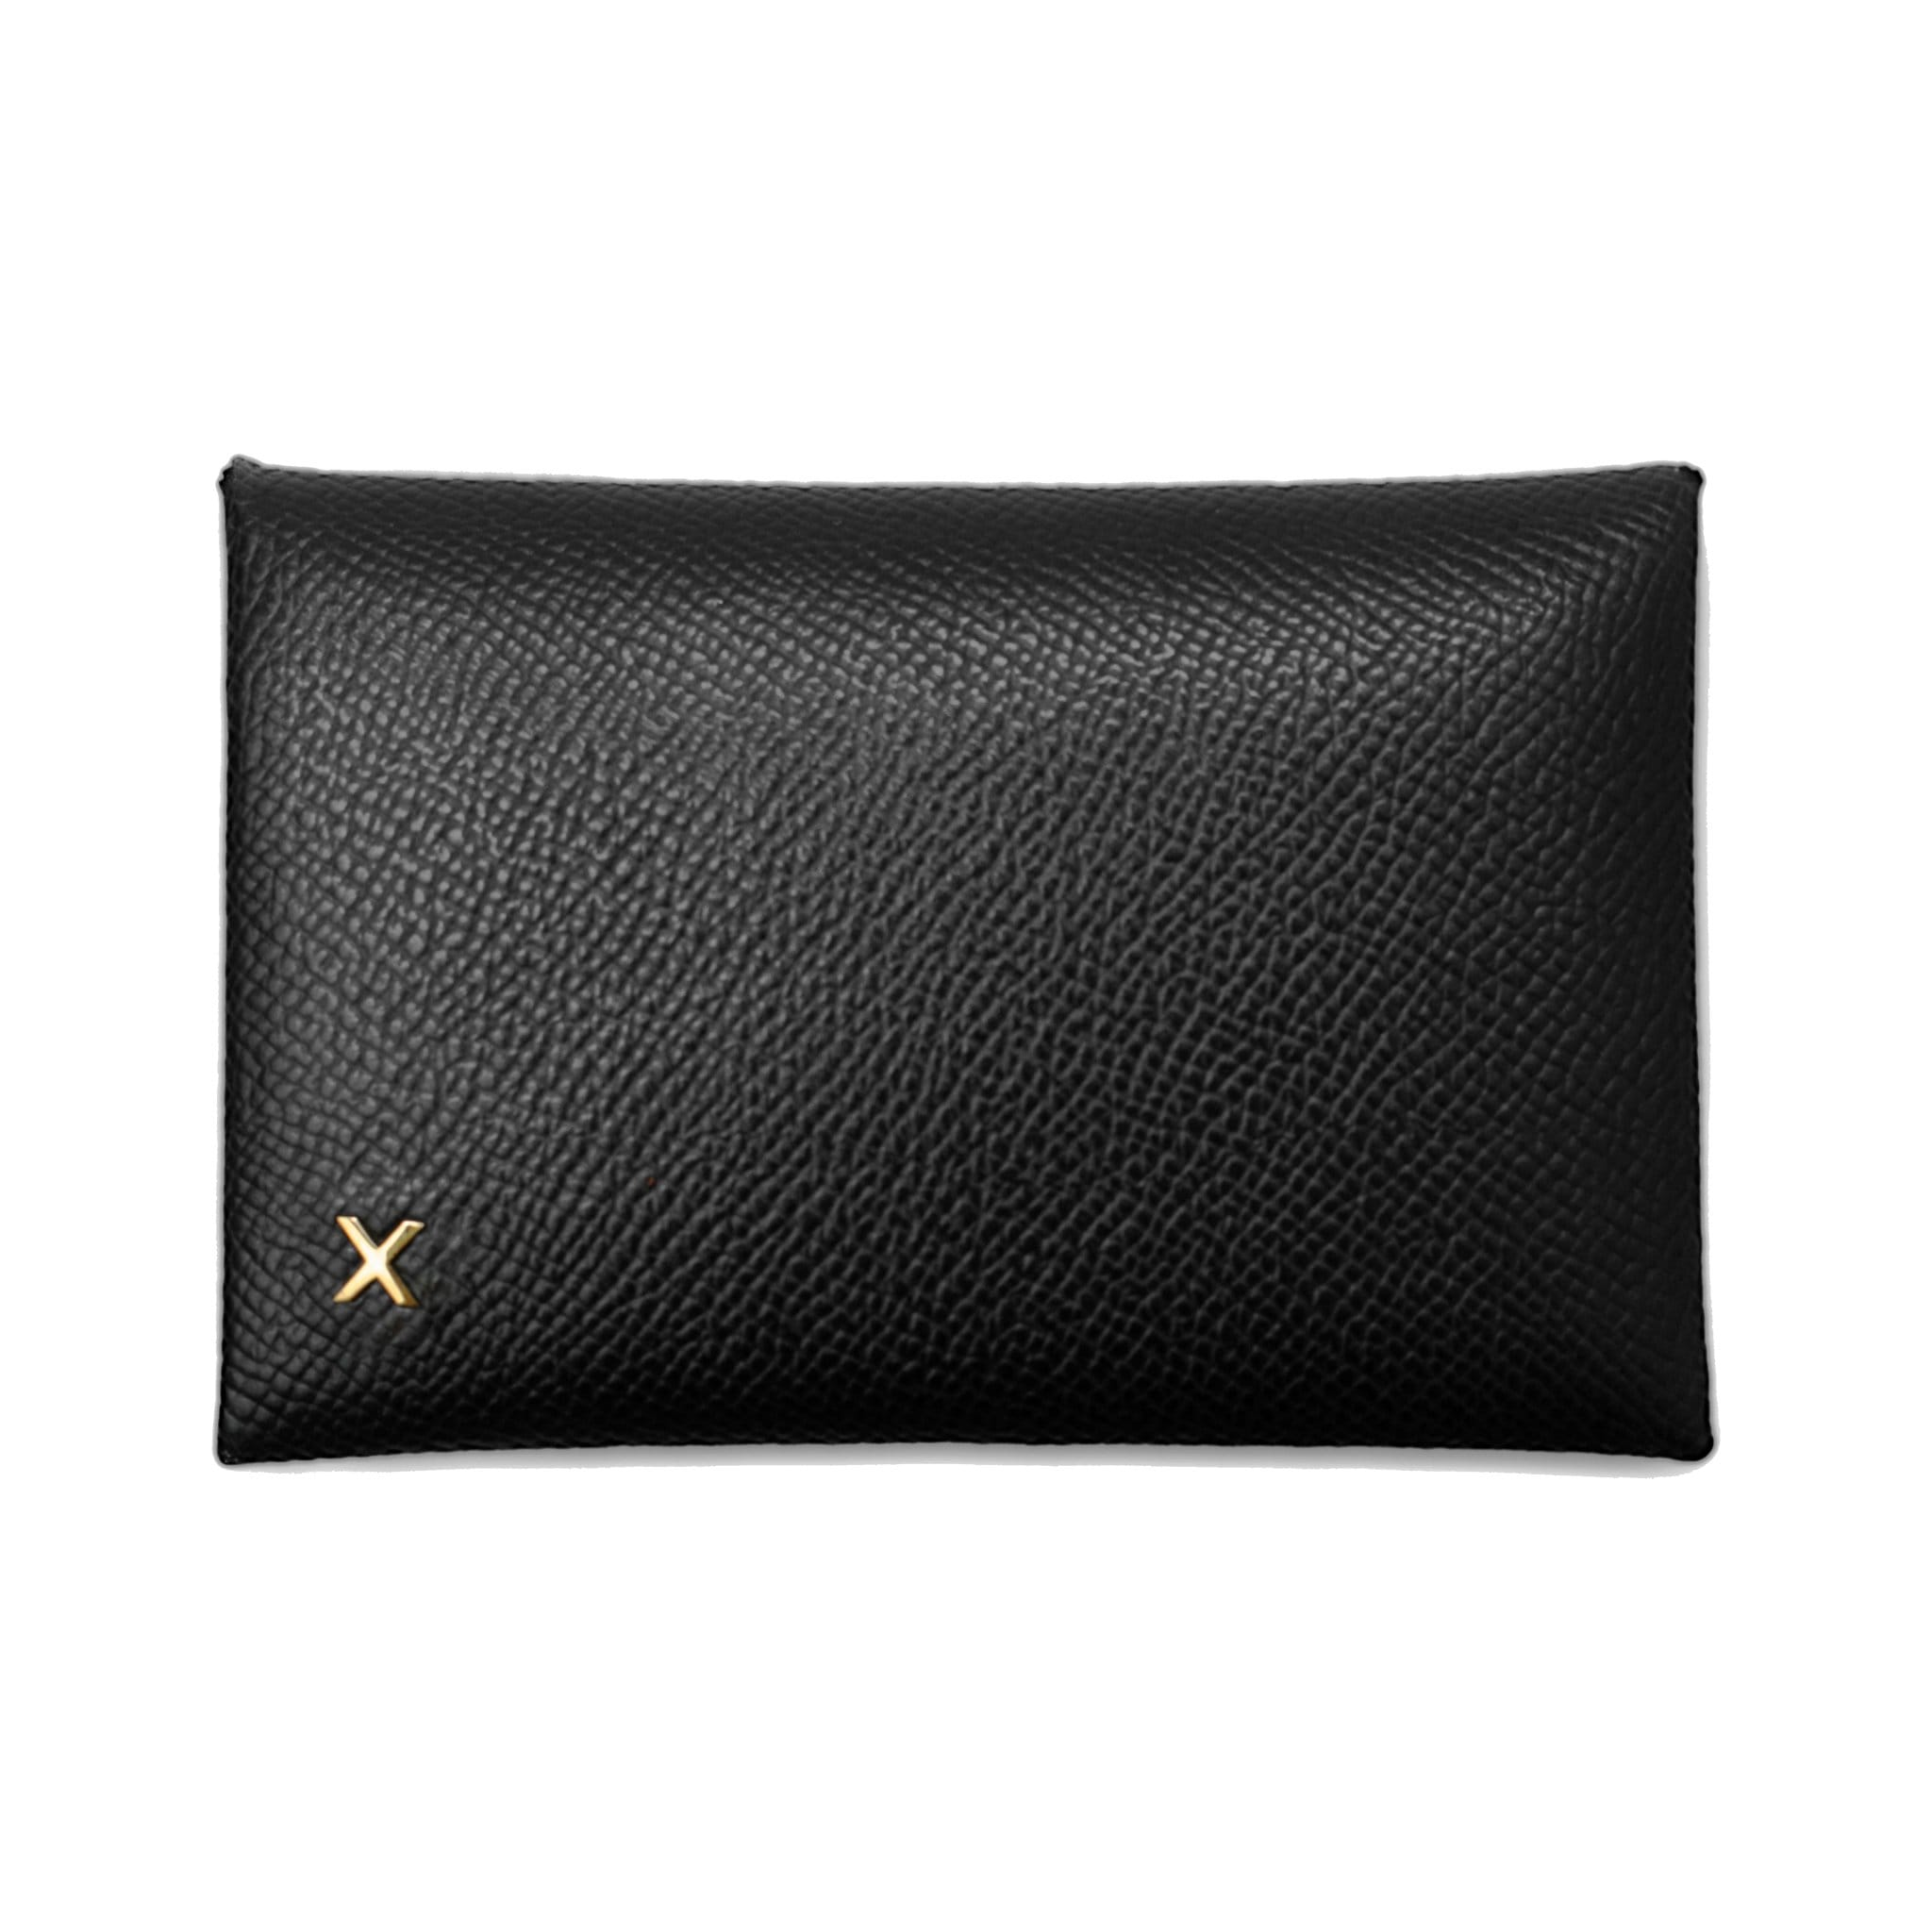 X NIHILO Carla cardholder in black textured cow leather 9575d68975ac2